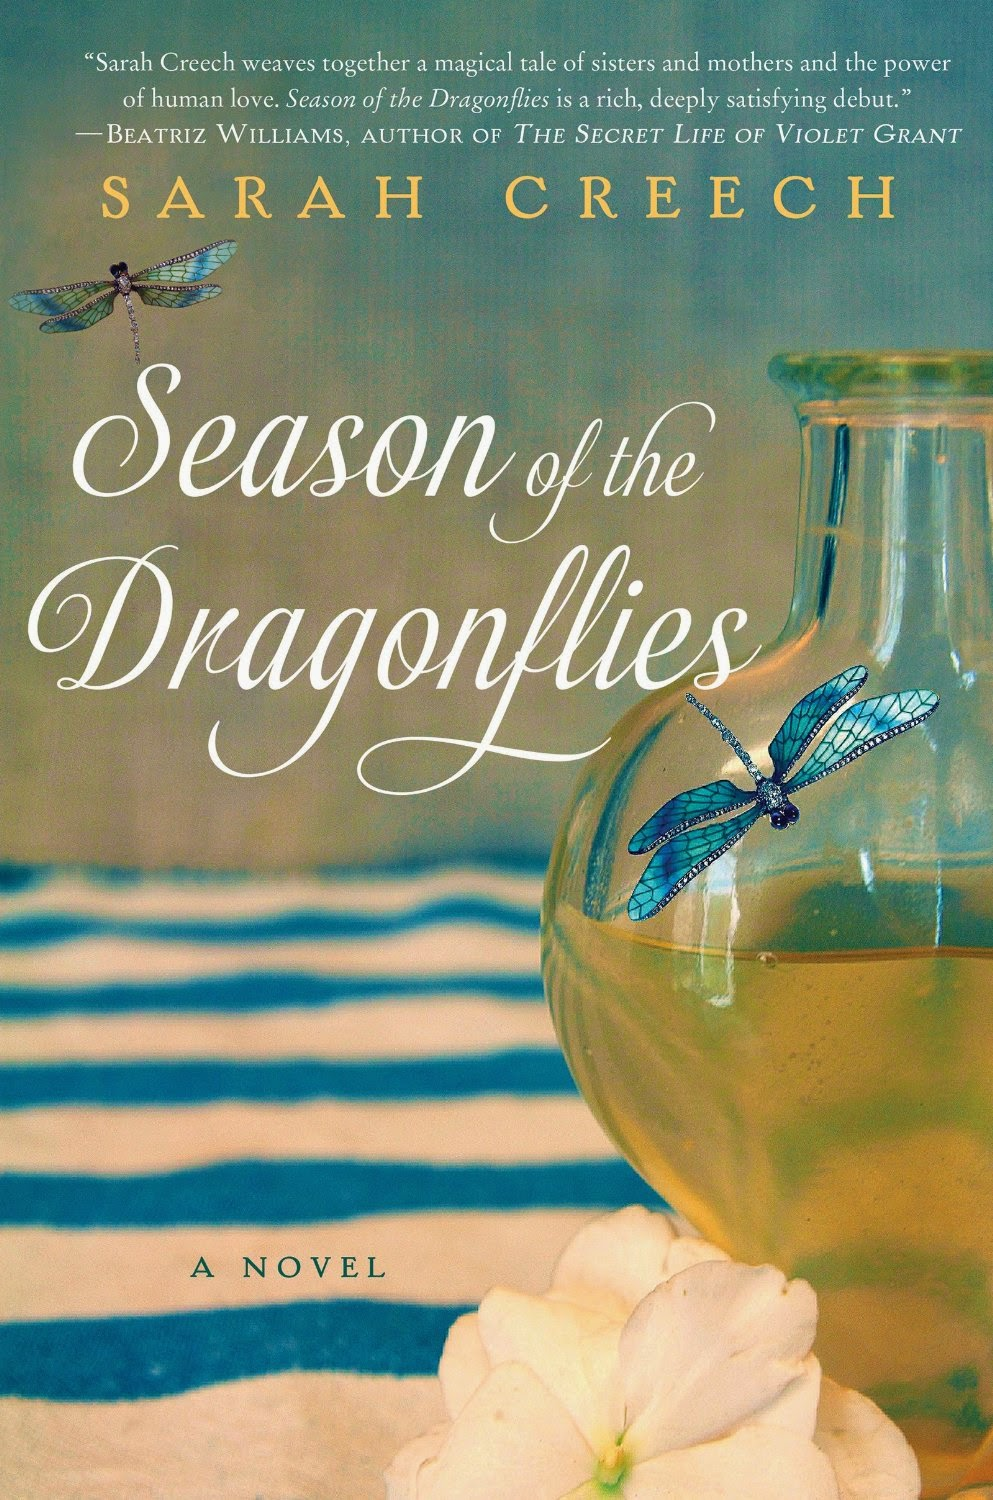 Bookfoolery season of the dragonflies by sarah creech season of the dragonflies by sarah creech kristyandbryce Image collections